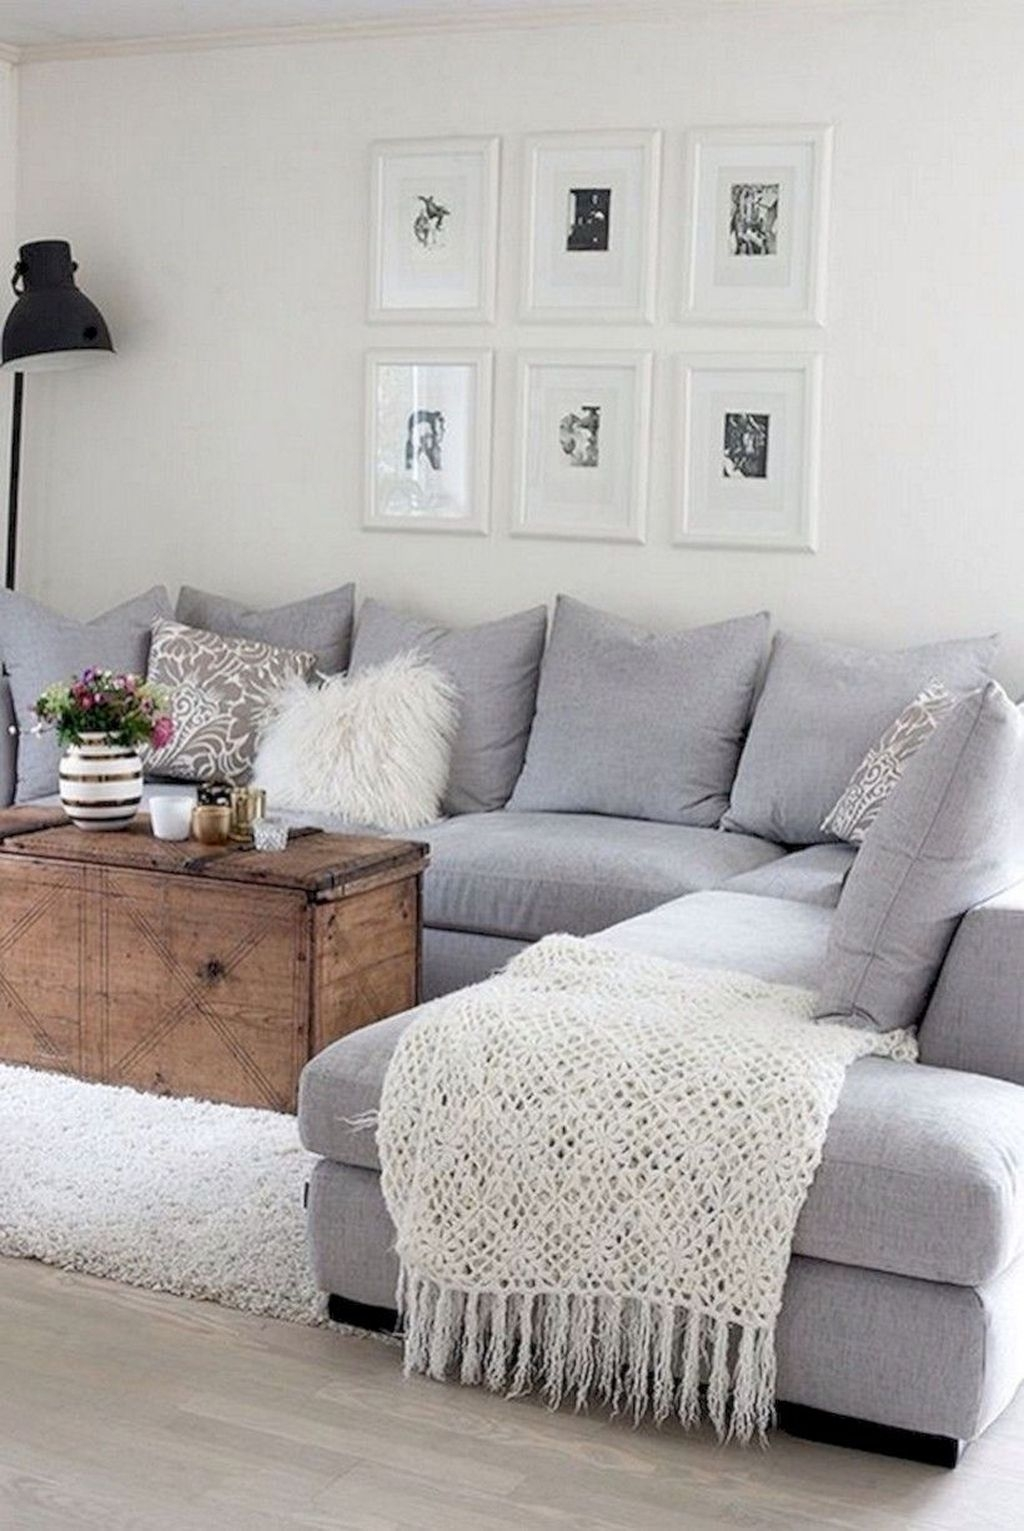 The Best Living Room Decorating Ideas Trends 2019 03